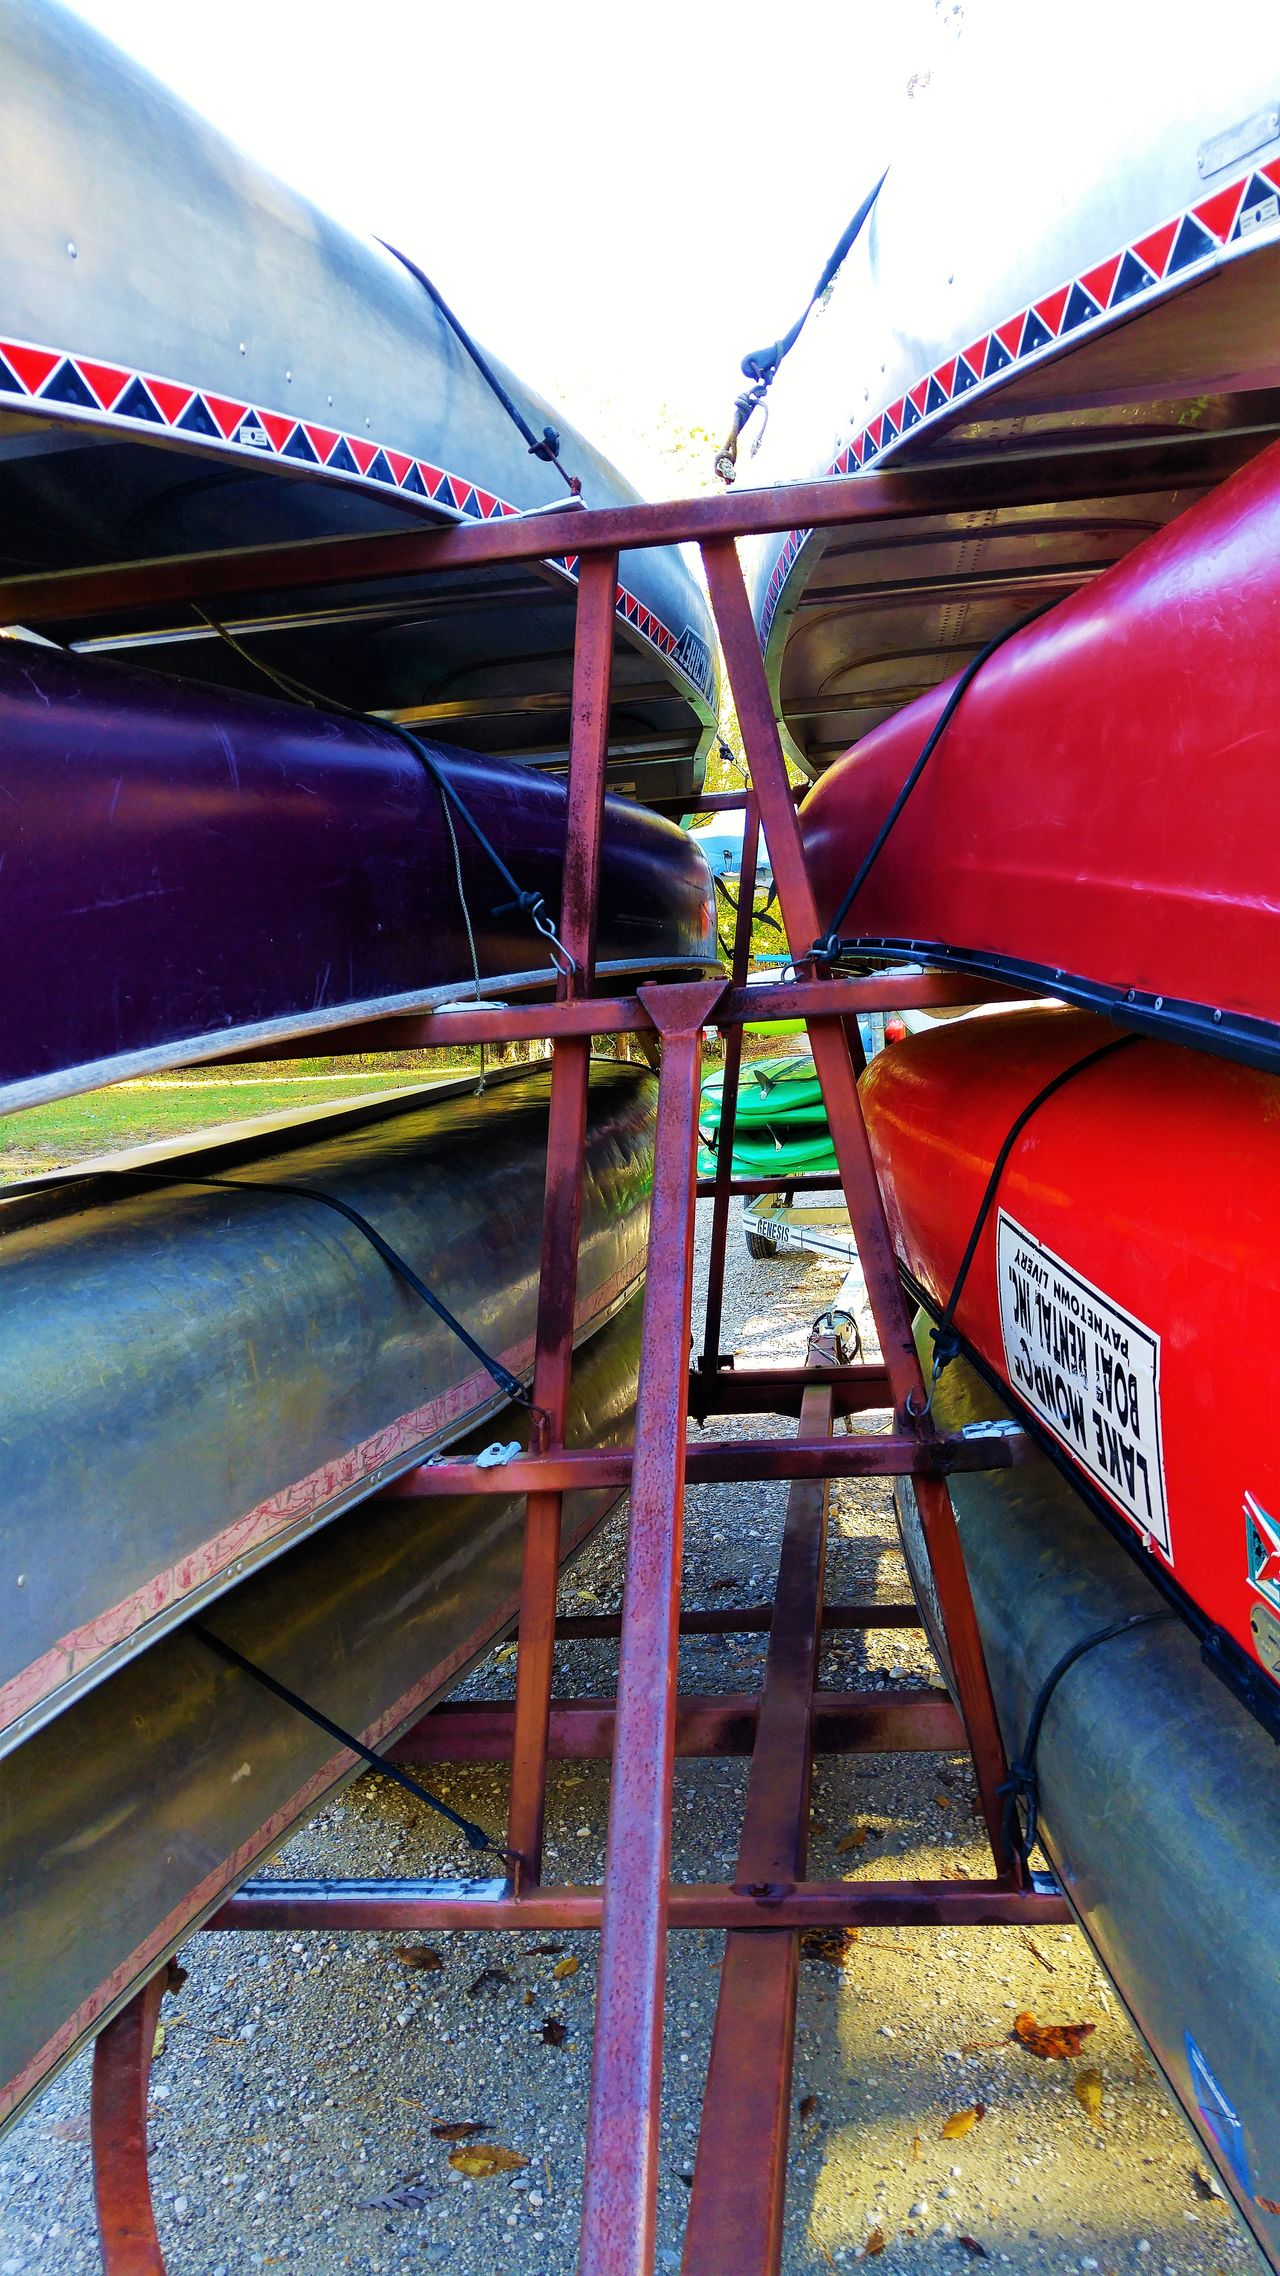 Boats Canoes Day Metal Metallic Structure Multi Colored No People Outdoors Purple Red Silver  Vibrant Color Water Sports